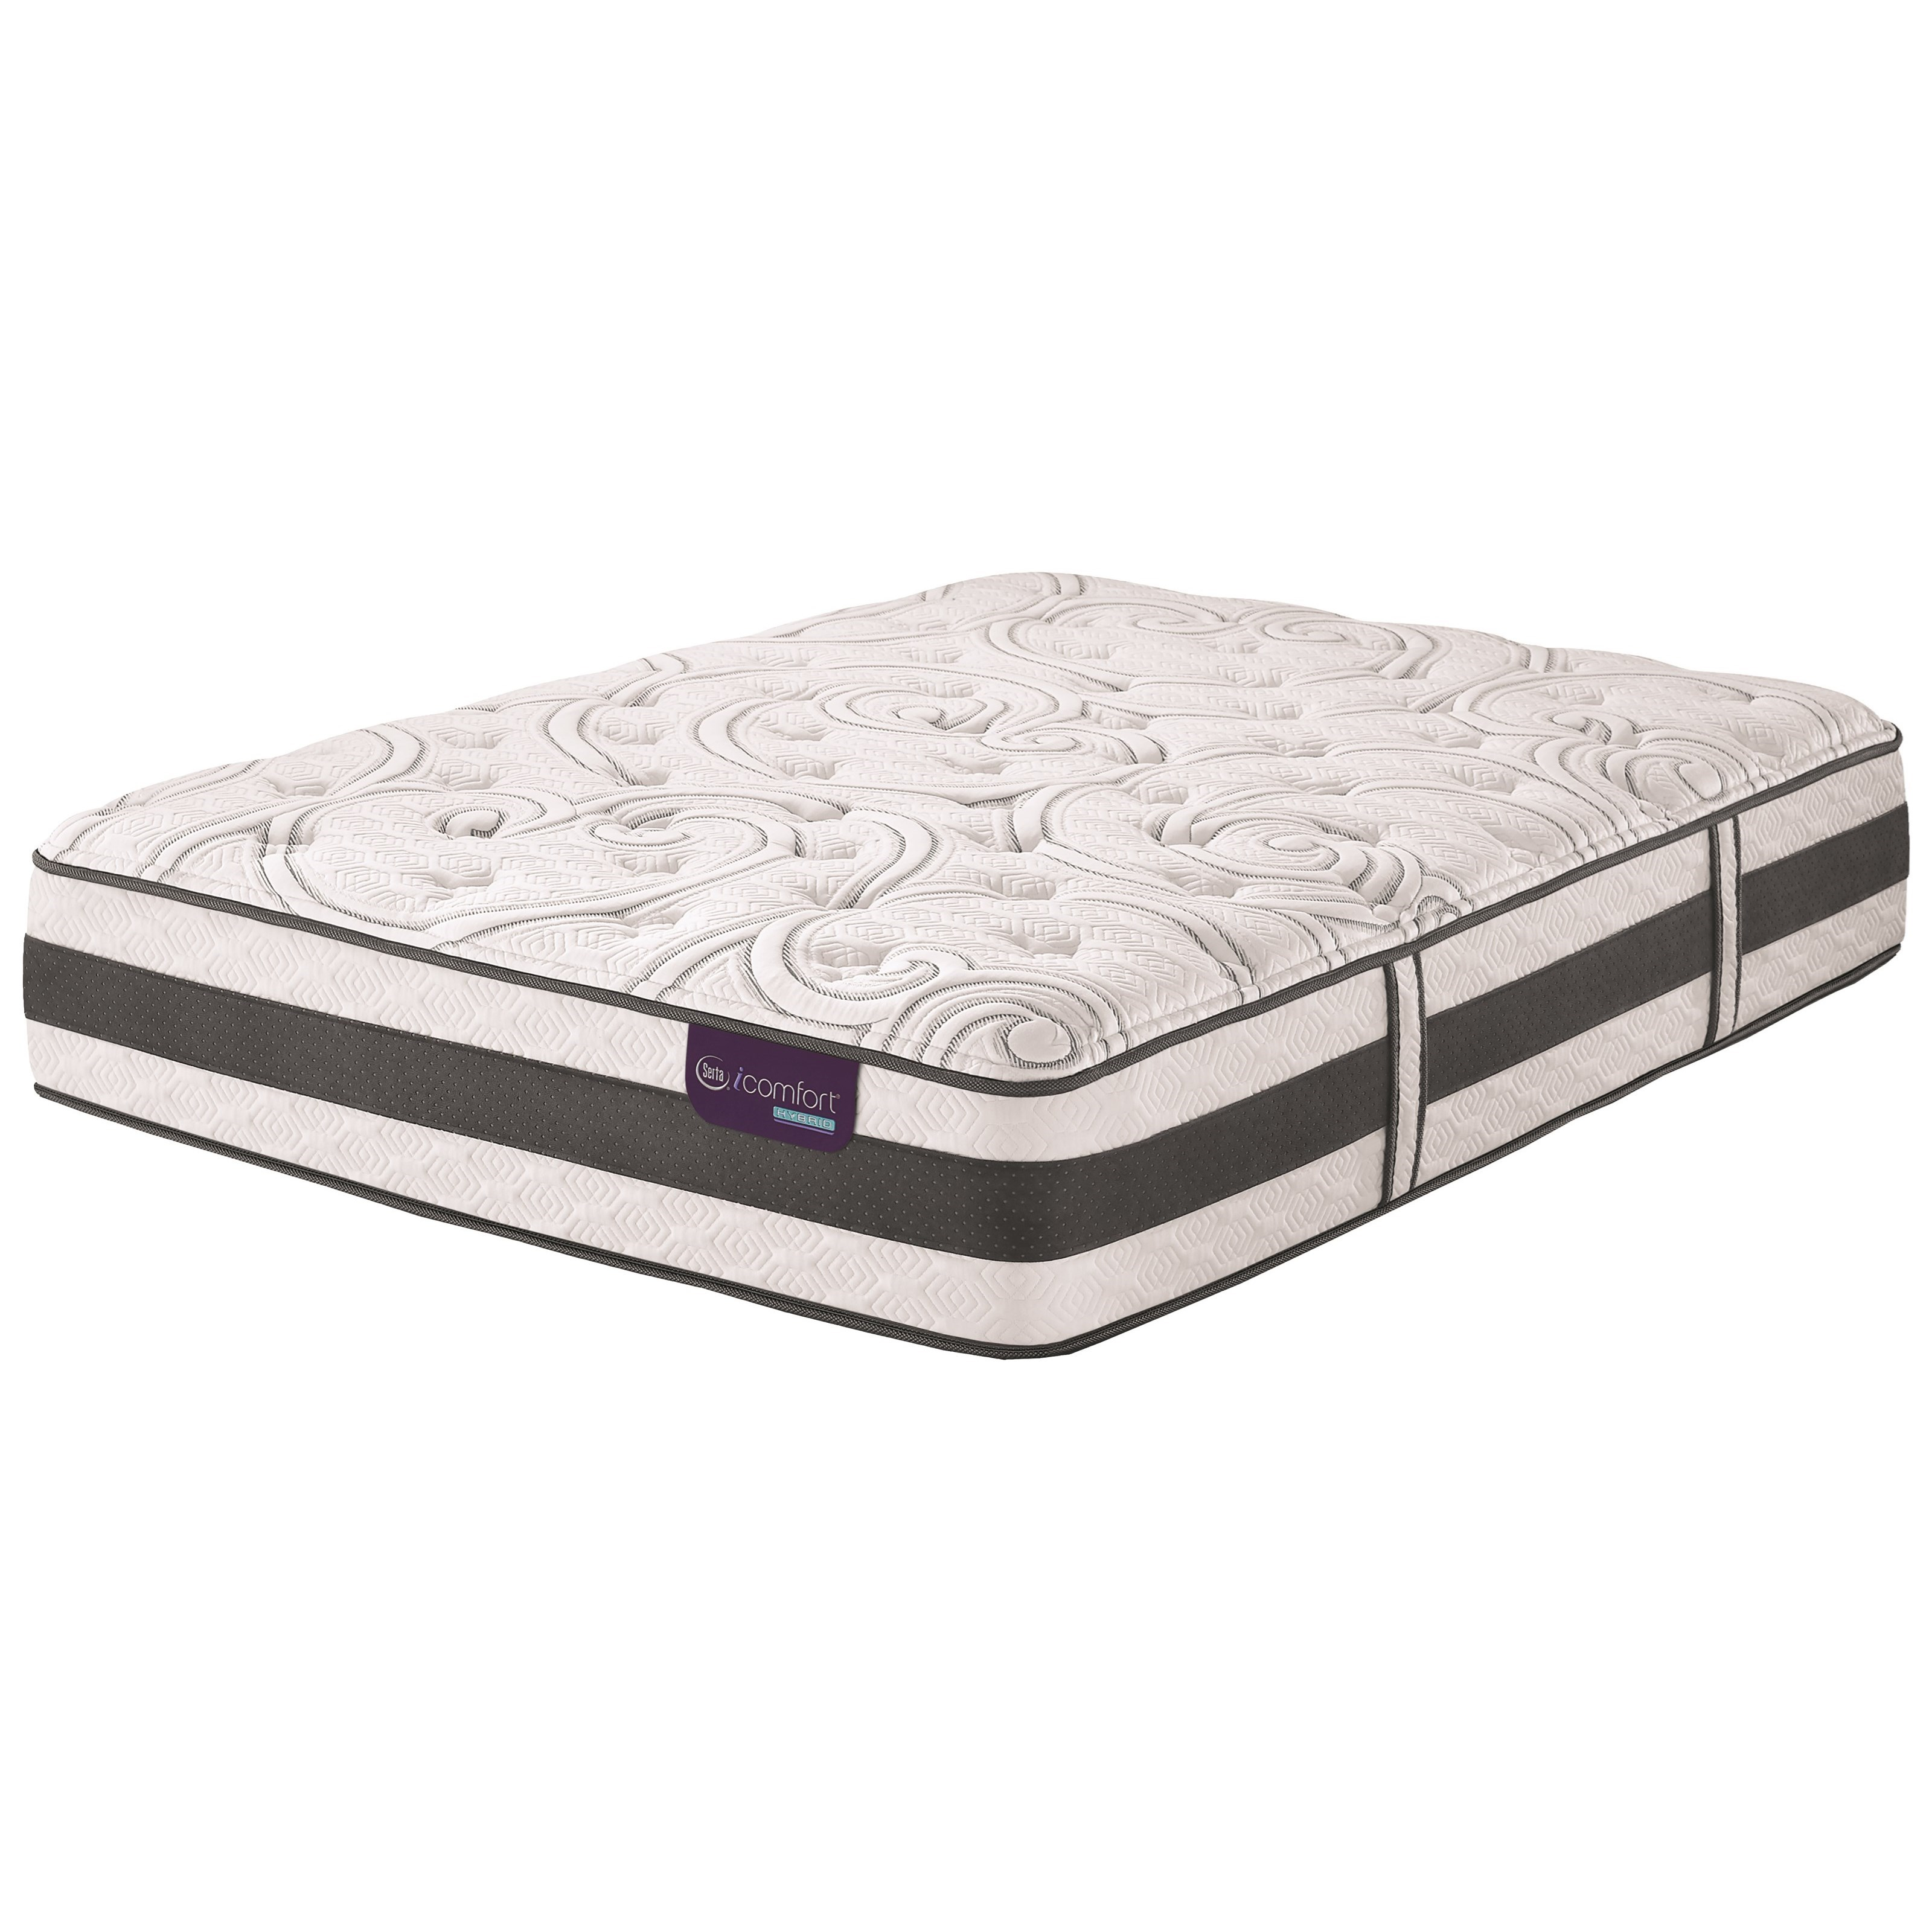 Serta iComfort Hybrid Recognition Queen Plush Hybrid Quilted Mattress - Item Number: RecgntnPlush-Q